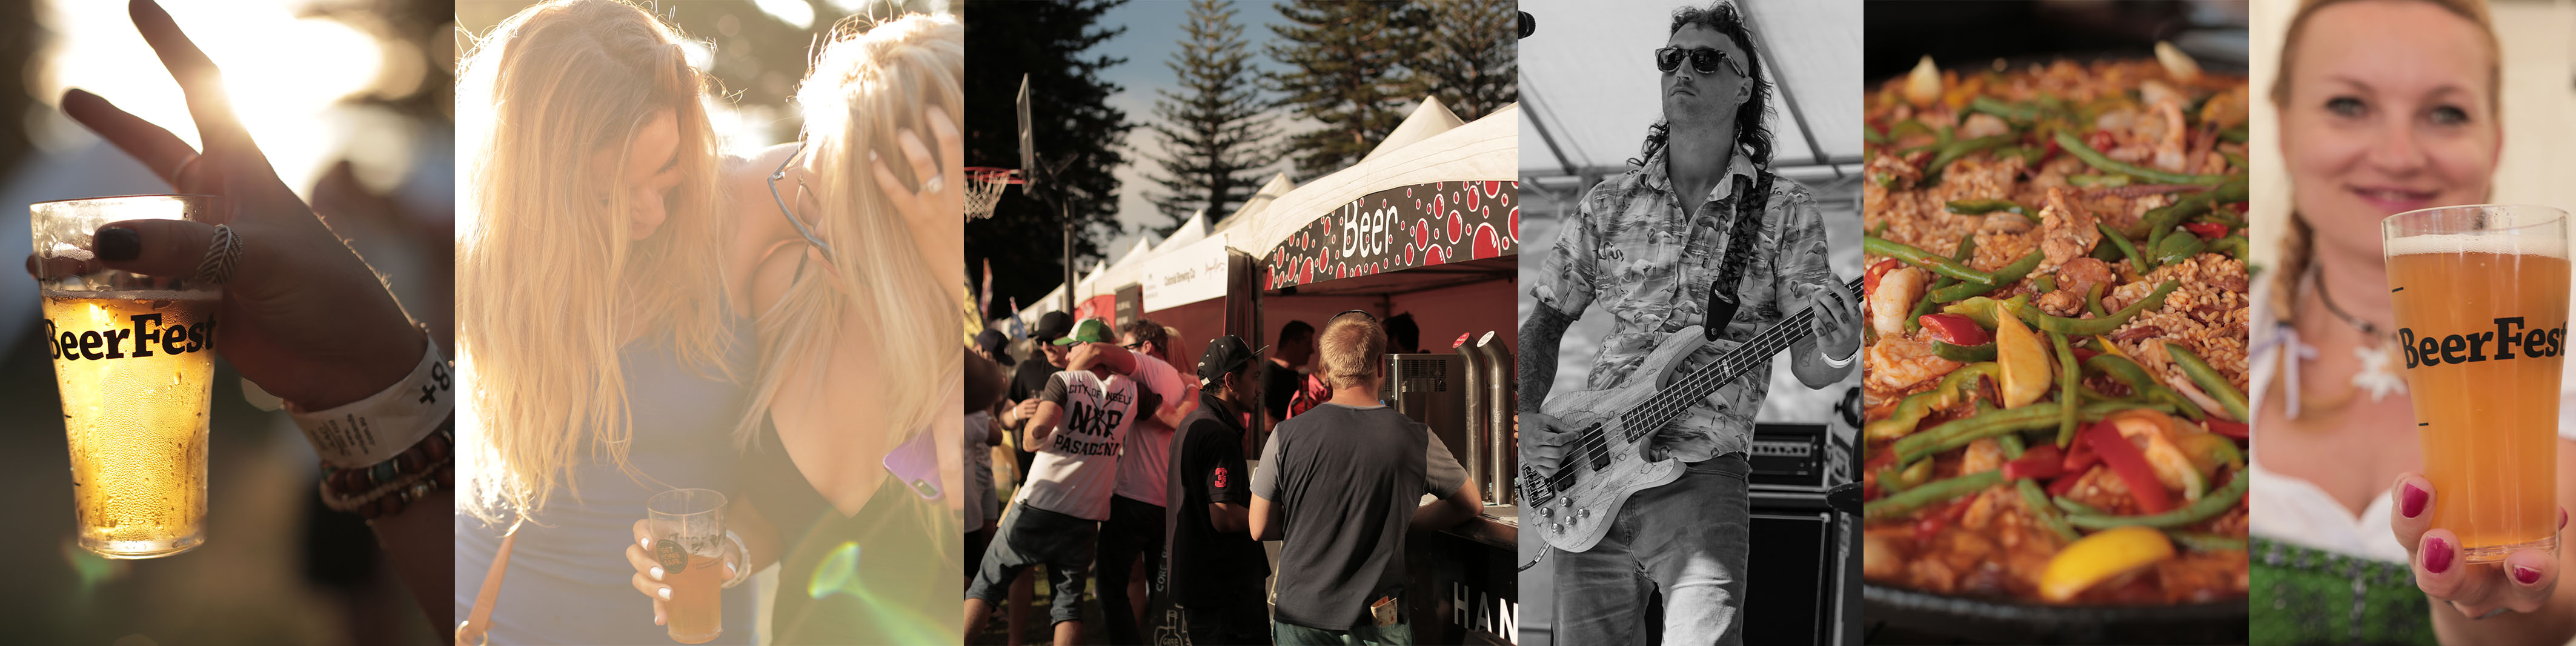 freo beer fest collage